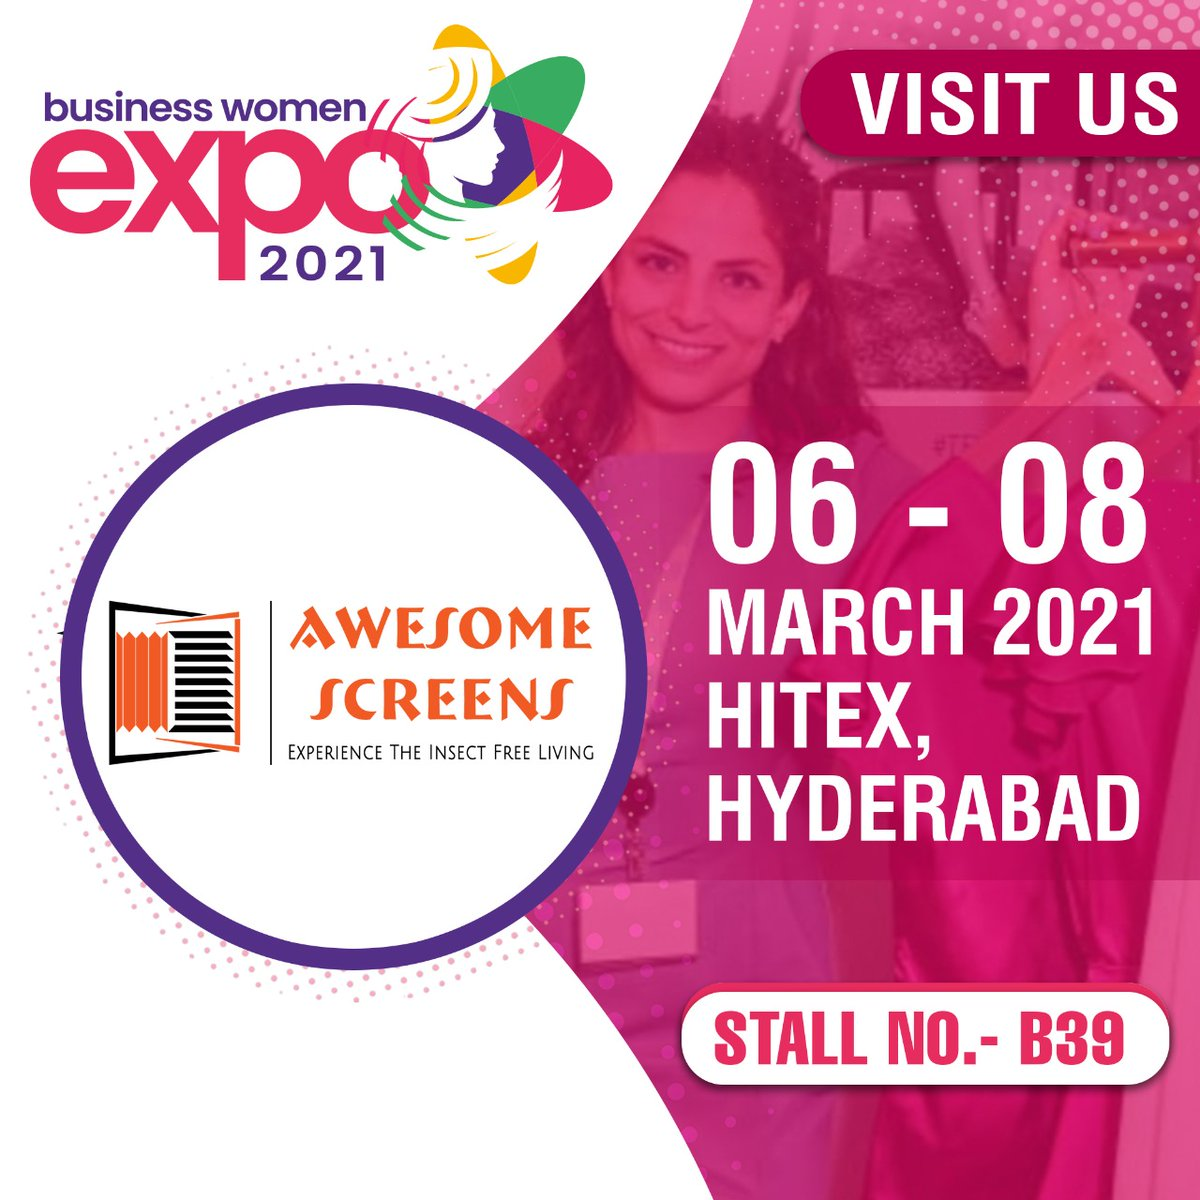 Ensure your house is insect-free while also looking amazing. Check out #Awesomescreens at stall B39 at the Business Women Expo being held at HITEX from 6 to 8 March. #hyderabad #exhibition #exhibitioninhyderabad #HITEX #Hyderabaddiaries #shopping #stalls #smallbusiness #vendors